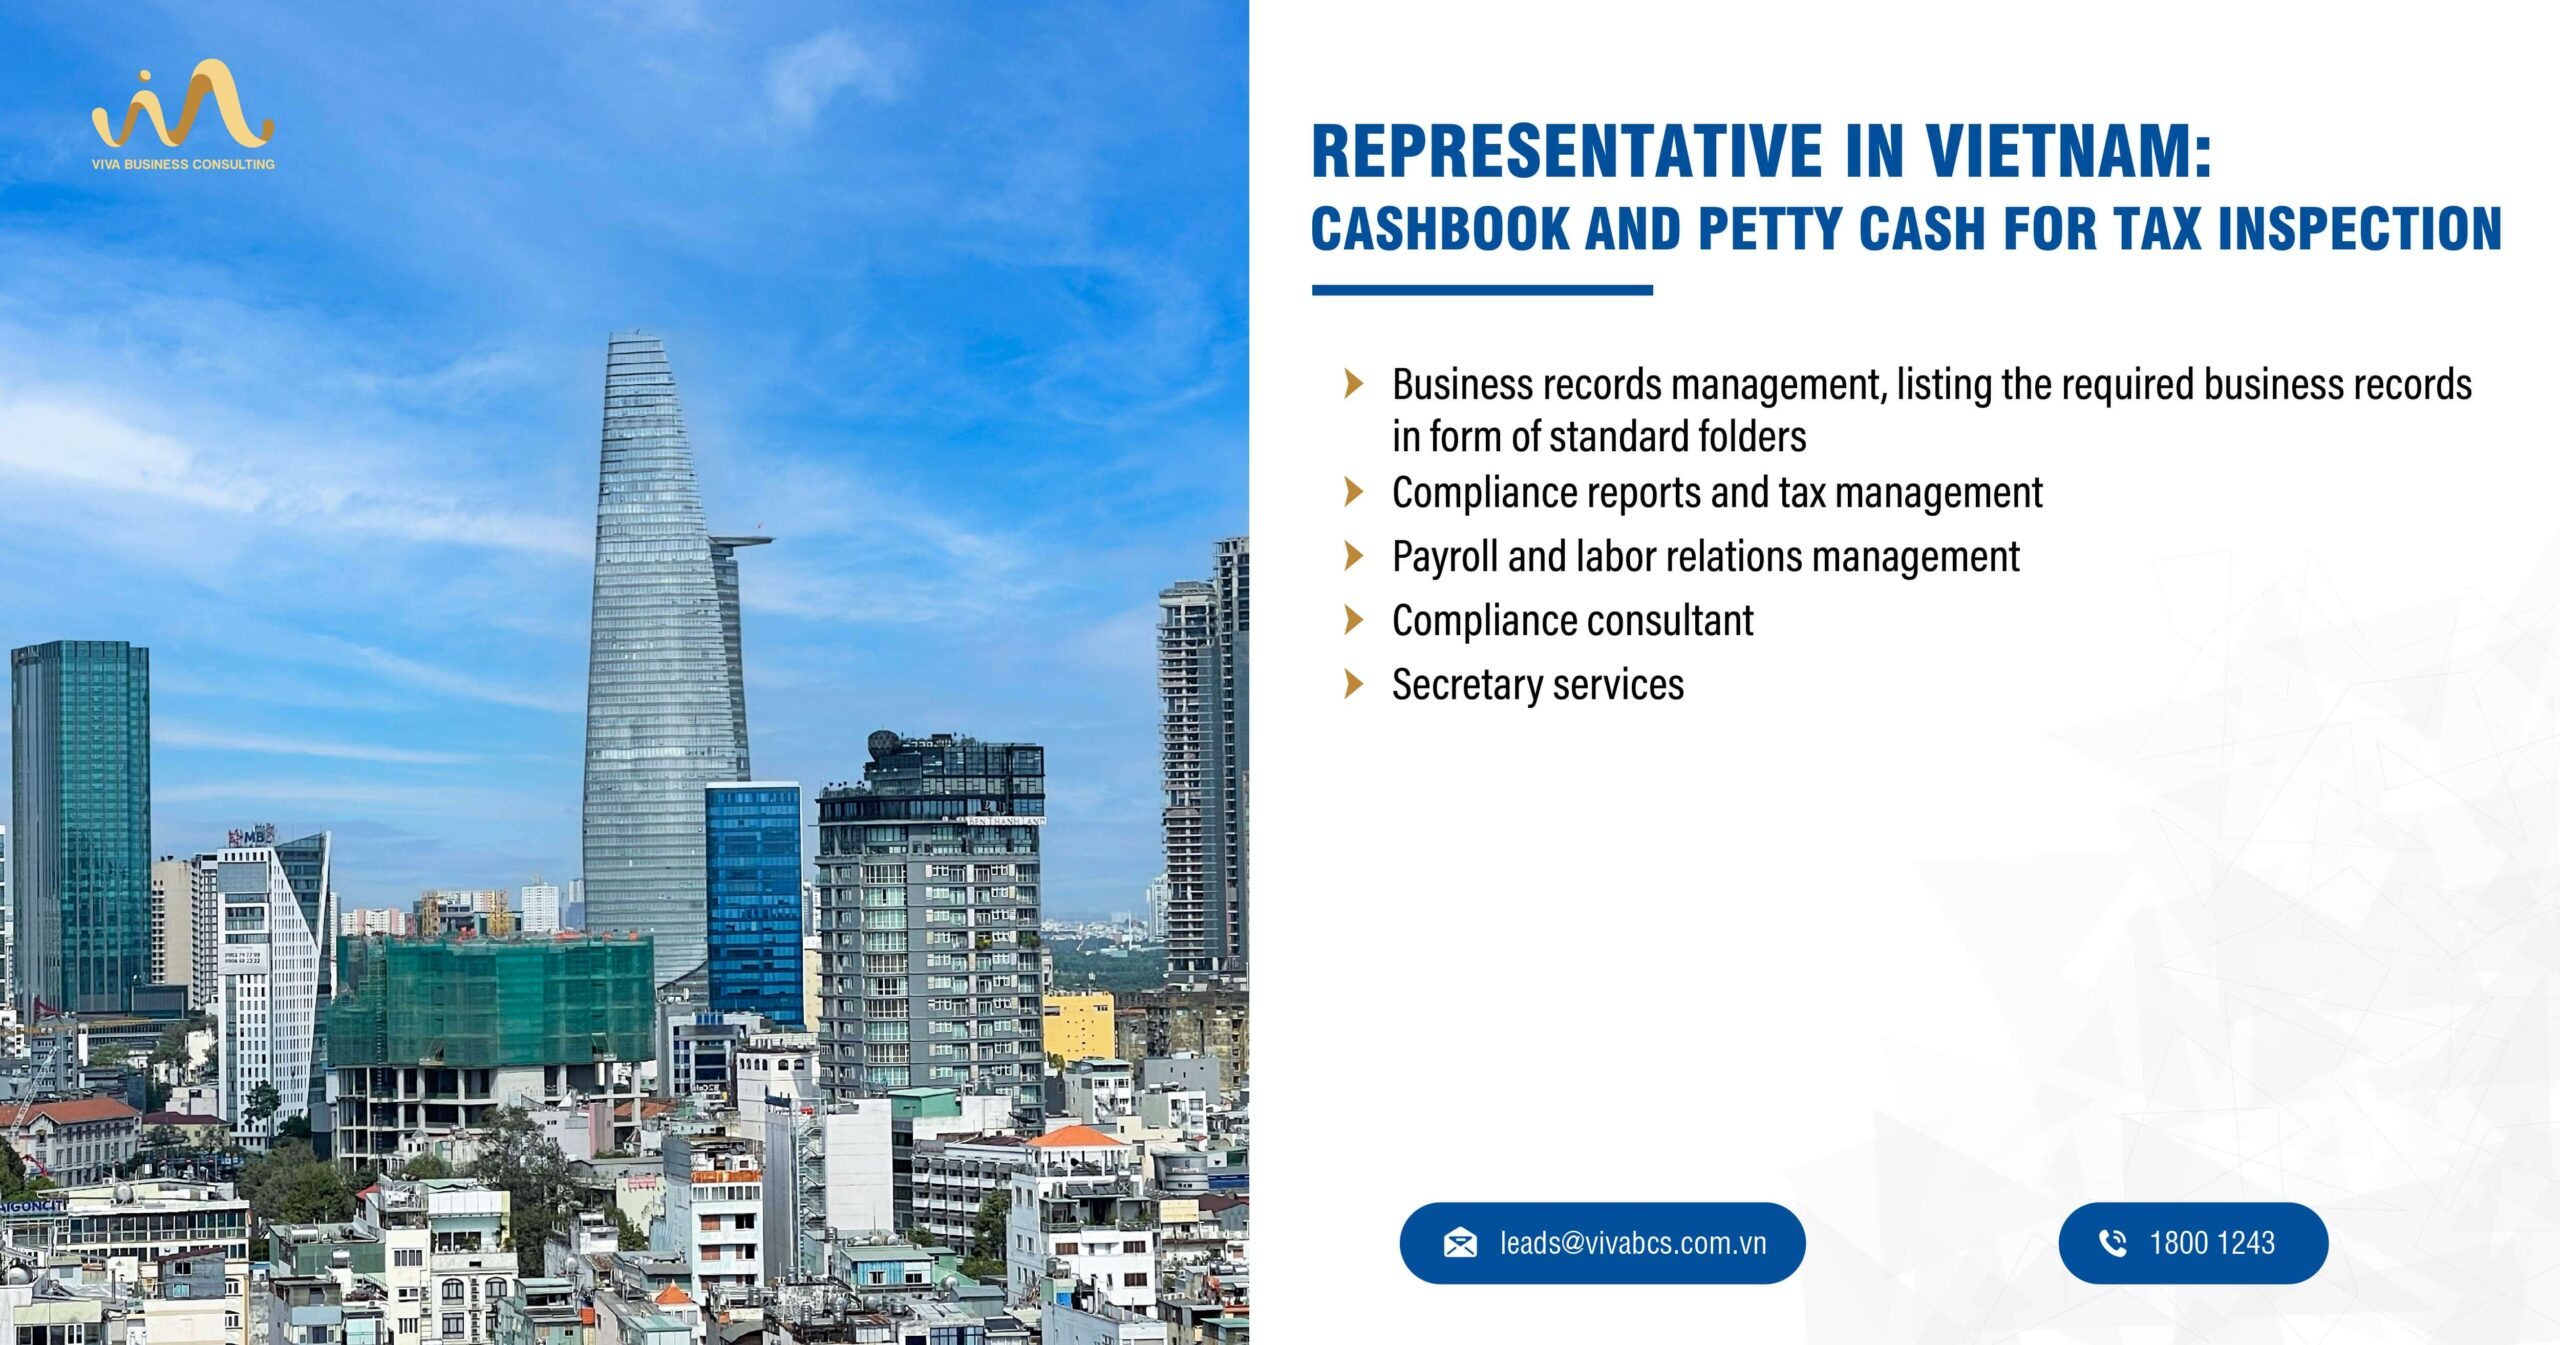 Represnetative office in Vietnam: Cashbook & Petty Cash